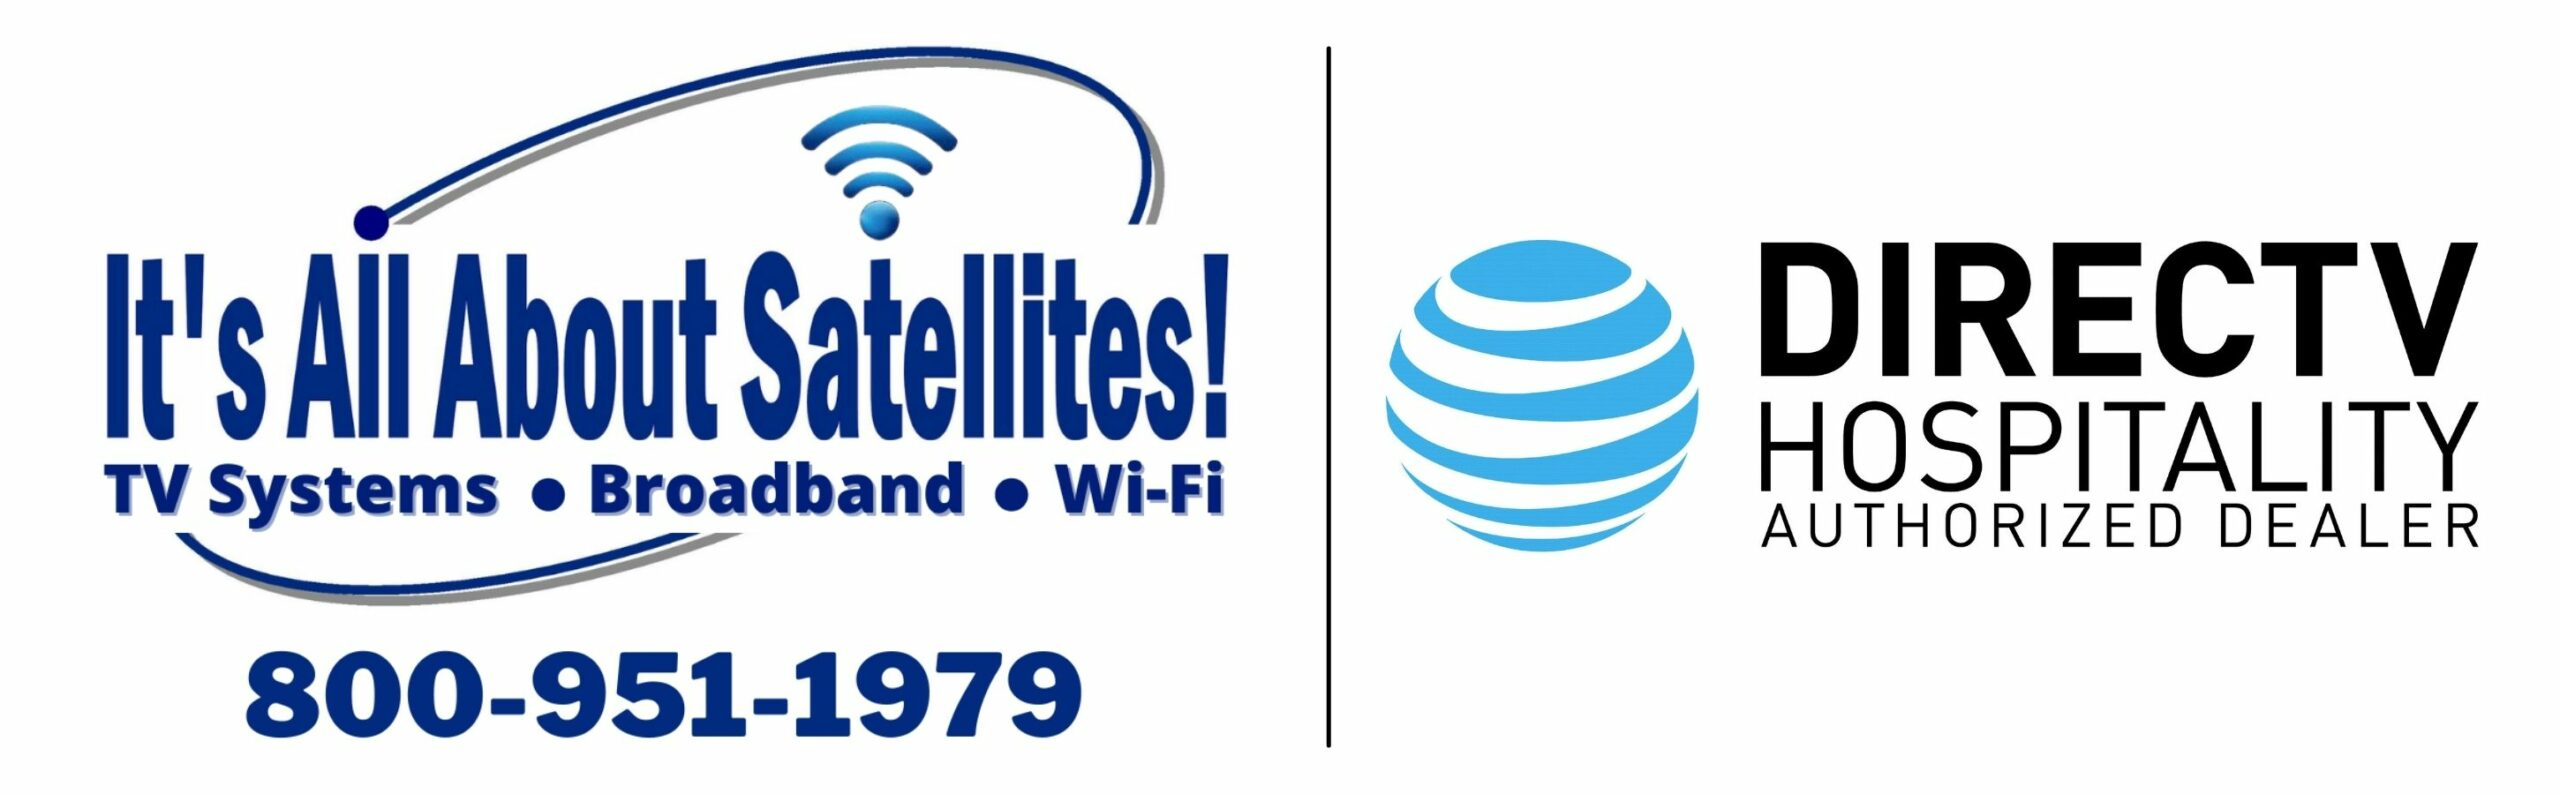 Its All About Satellites DIRECTV Hospitality Authorized Dealer. TV for Hotels, TV for RV Parks & Campgrounds, TV for Assisted Living & Healthcare, High Speed Internet, Wi-Fi Networks